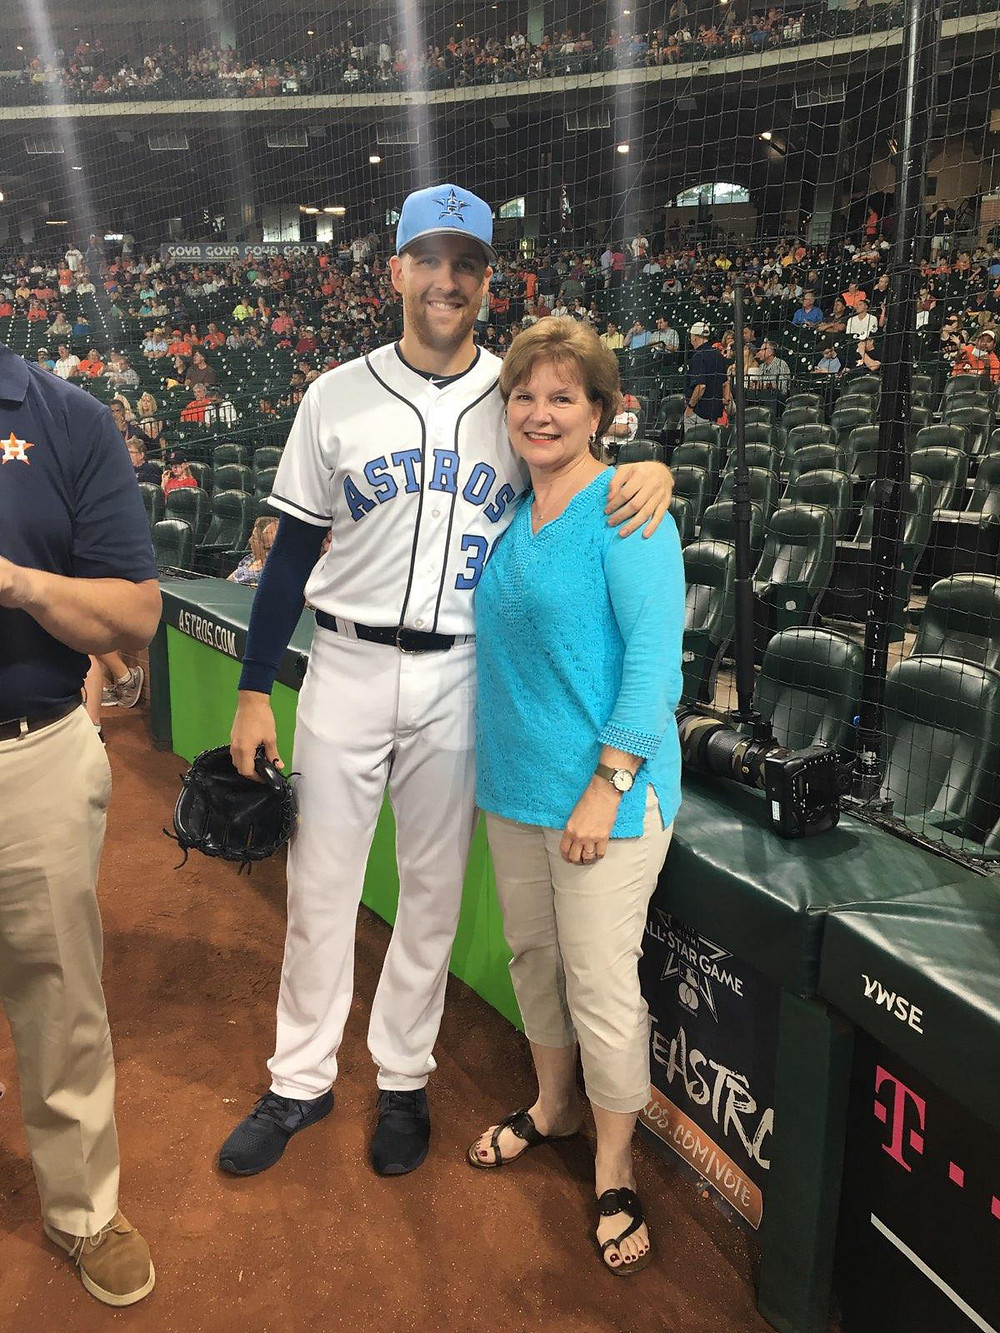 For Houston Astros pitcher Collin McHugh, his mother Teresa has been a regular throughout his rise in baseball, from the little leagues, to high school and college ball, to five seasons in the minor leagues before catching on in the Major Leagues. (Photo courtesy of Scott and Teresa McHugh)